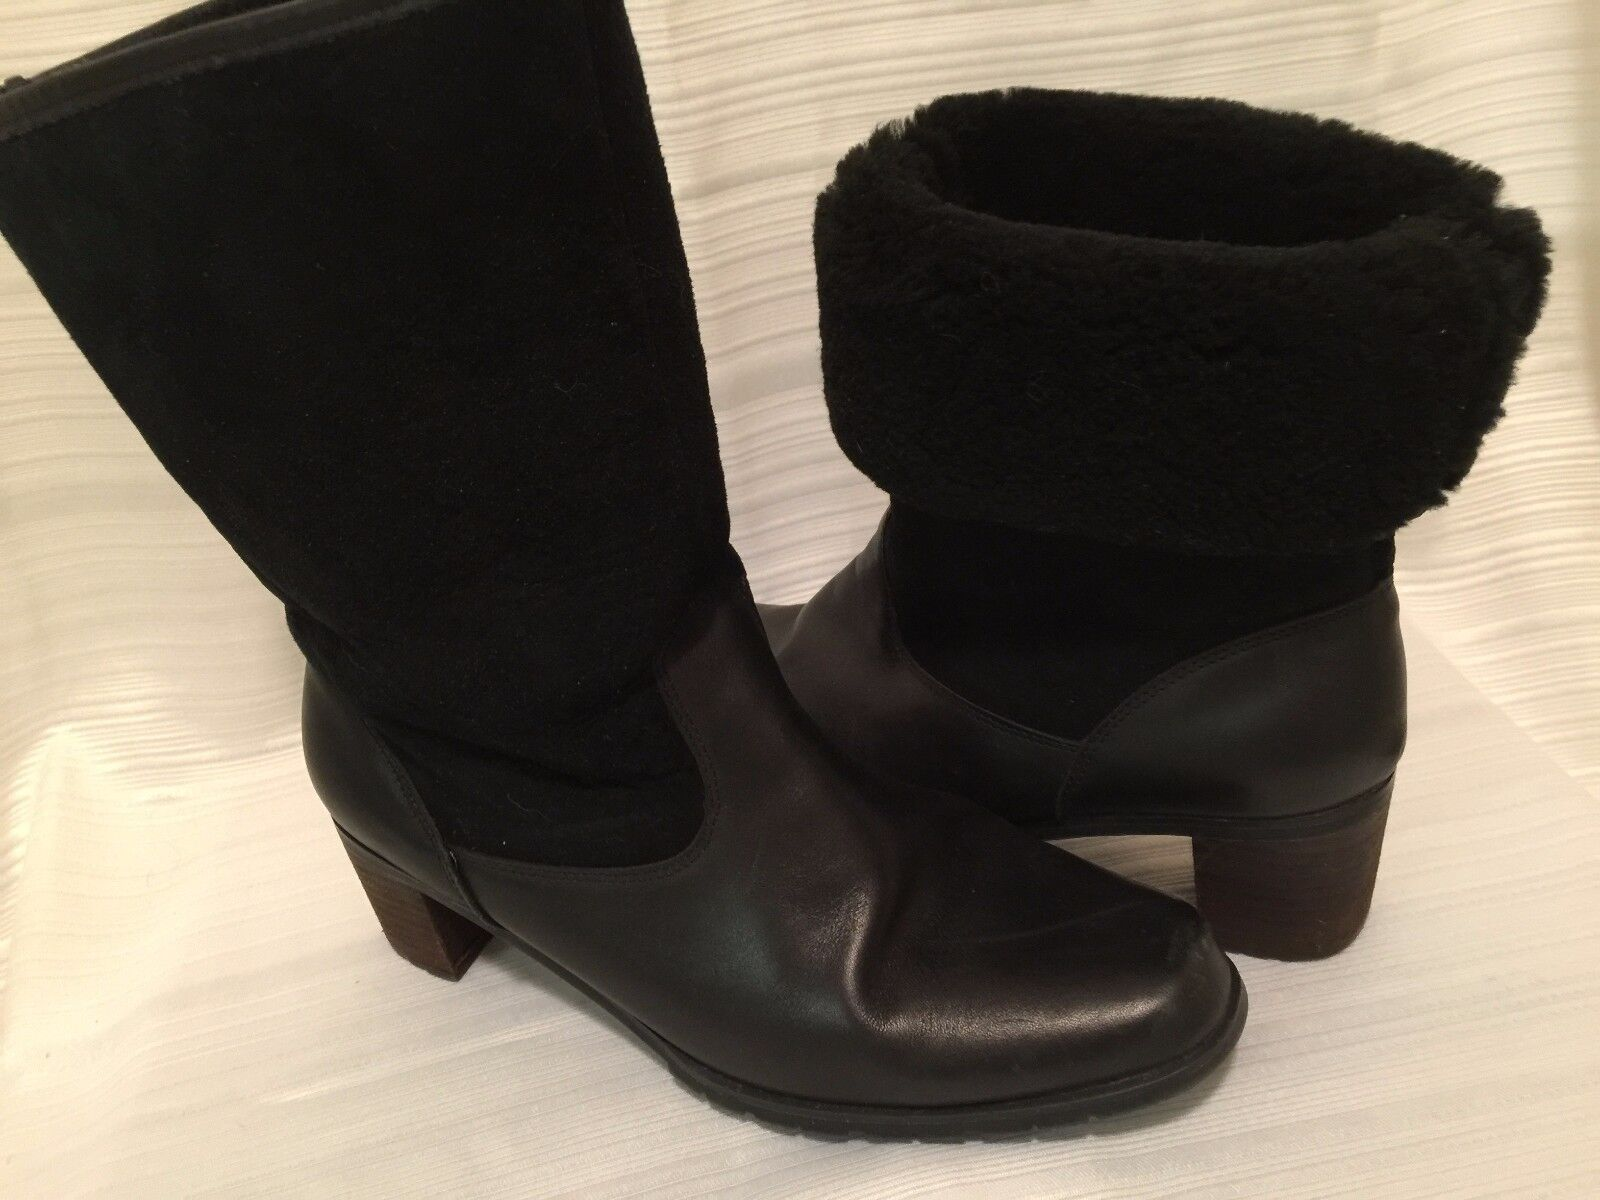 "Boots 9.5 M Waterproof Black Leather Brilliant Lined 2"" Heel Mid Calf Up Down"